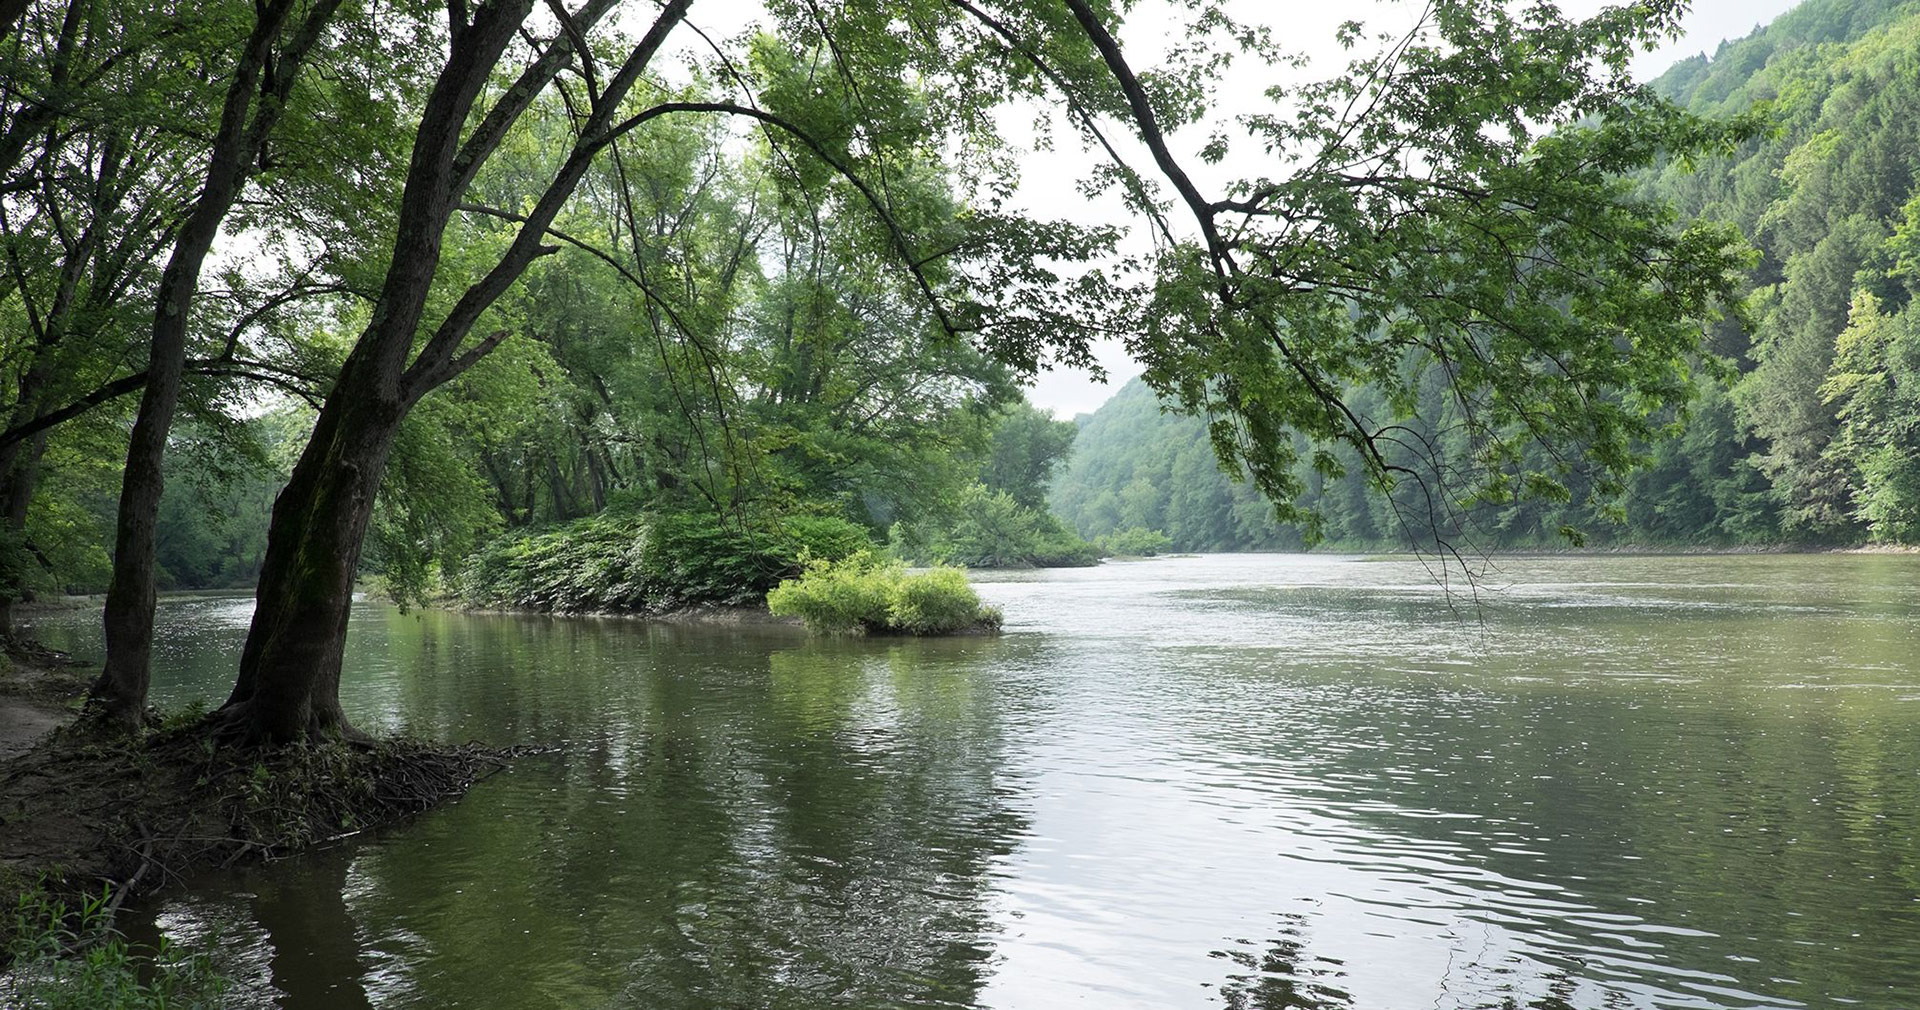 Site of the priesthood restoration at the Susquehanna River. Image via Church of Jesus Christ.